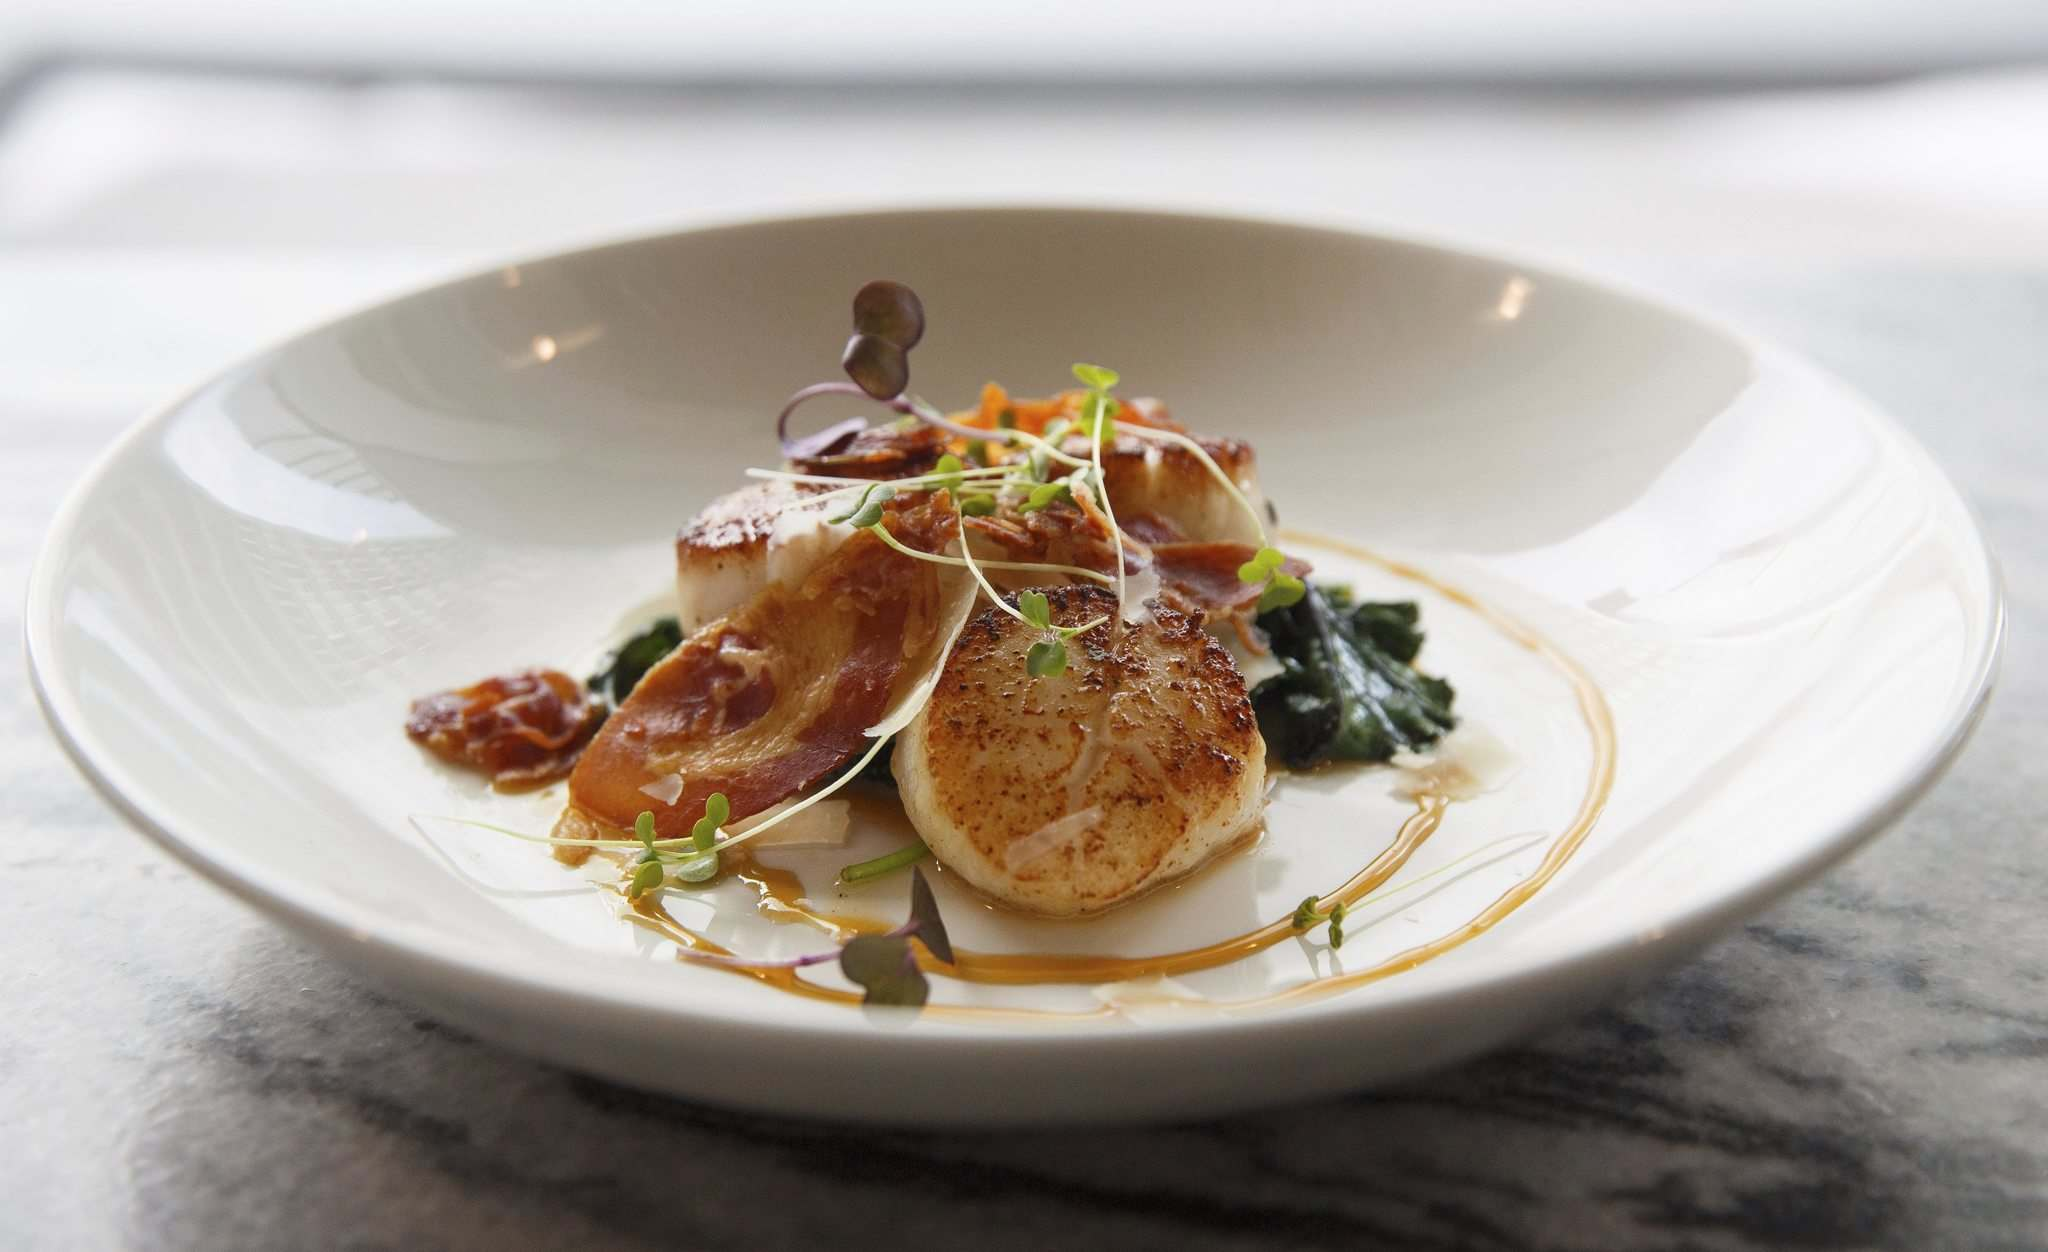 Scallops Pancetta with white balsamic, amaretto and winter greens.